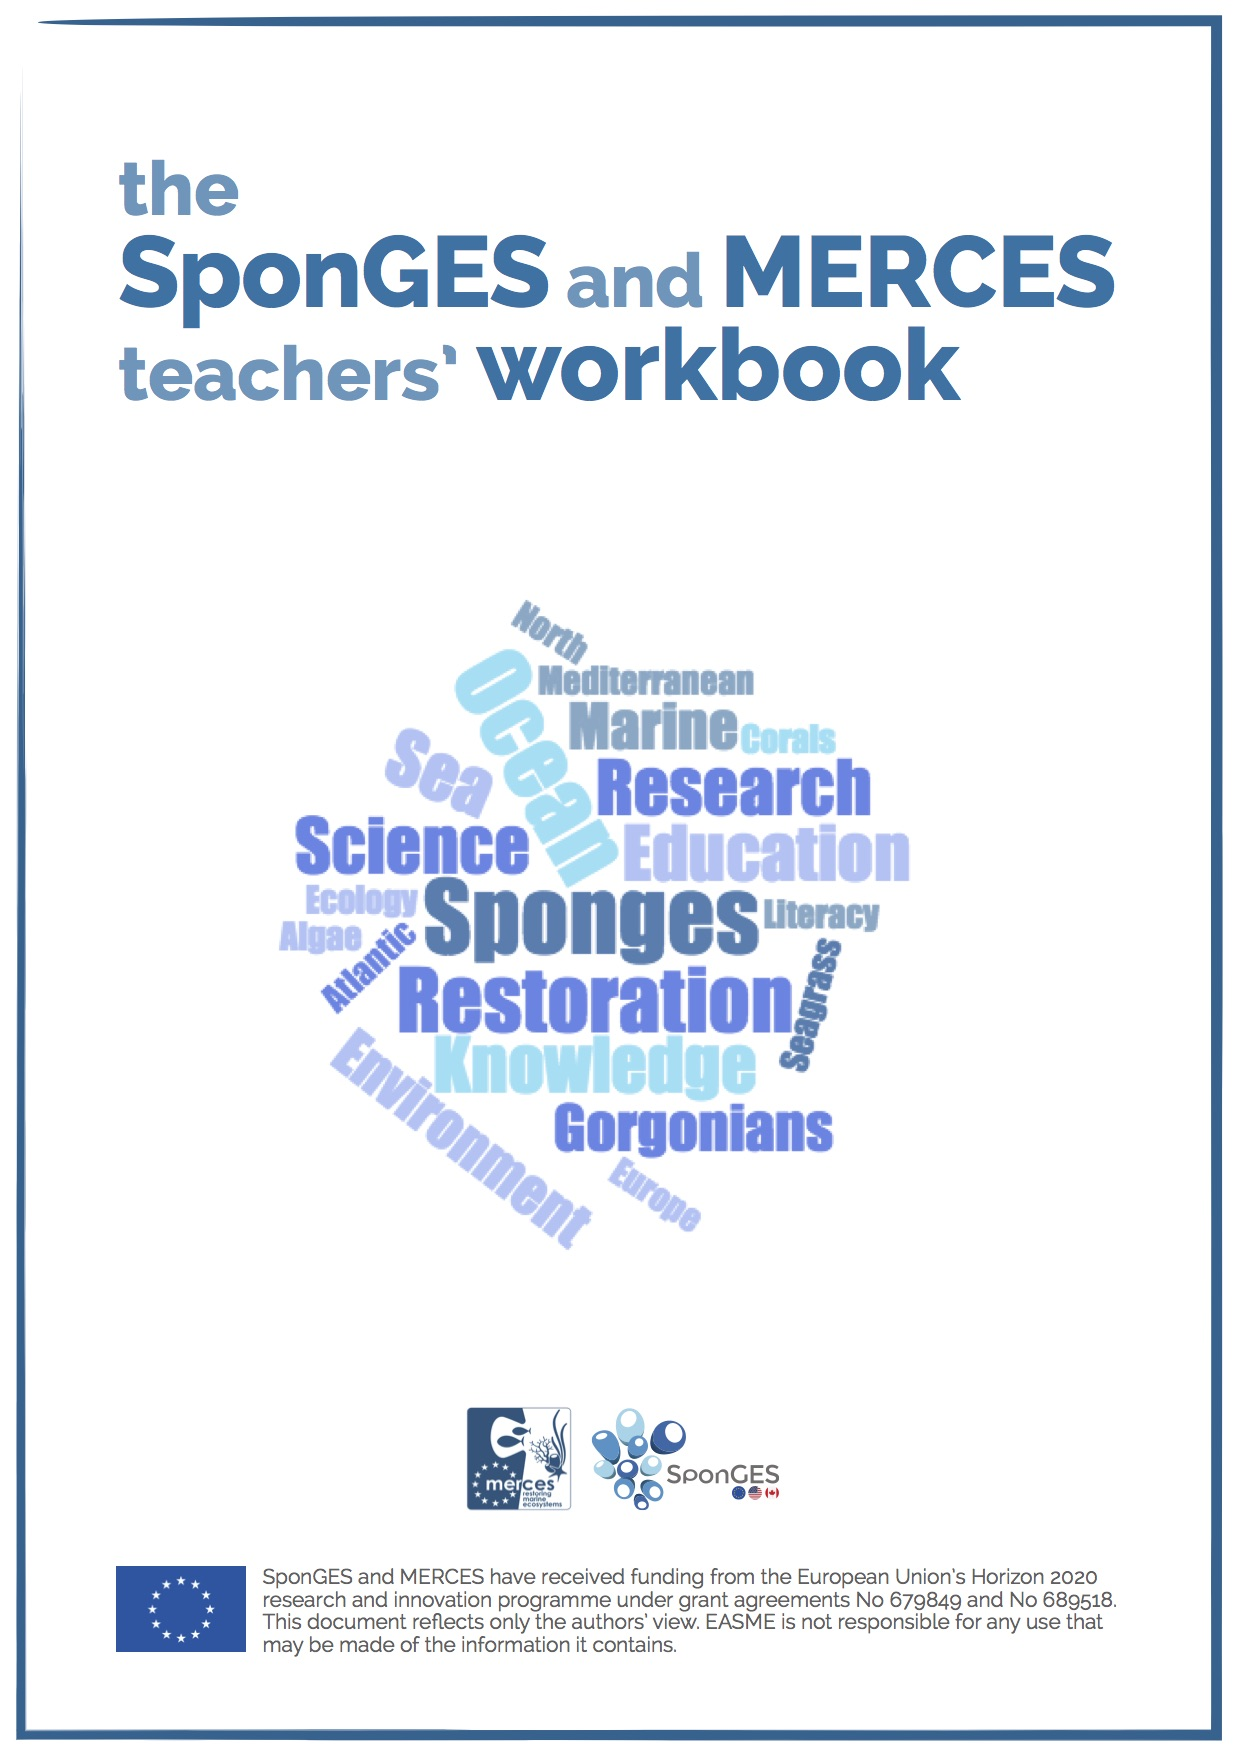 The SponGES and MERCES teachers' workbook